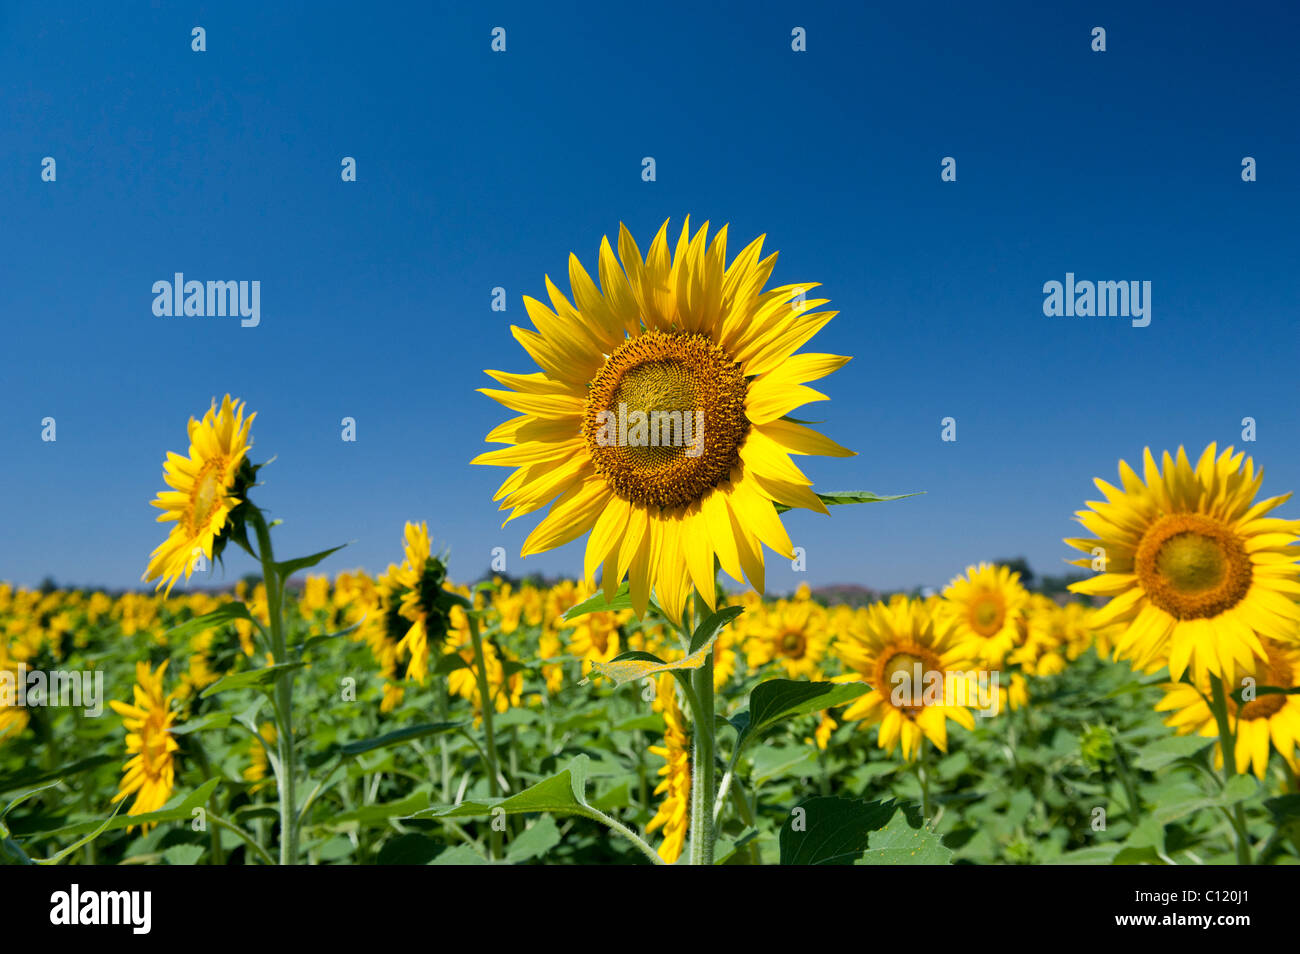 Cultivation of sunflowers in the Indian countryside, Andhra Pradesh, India - Stock Image